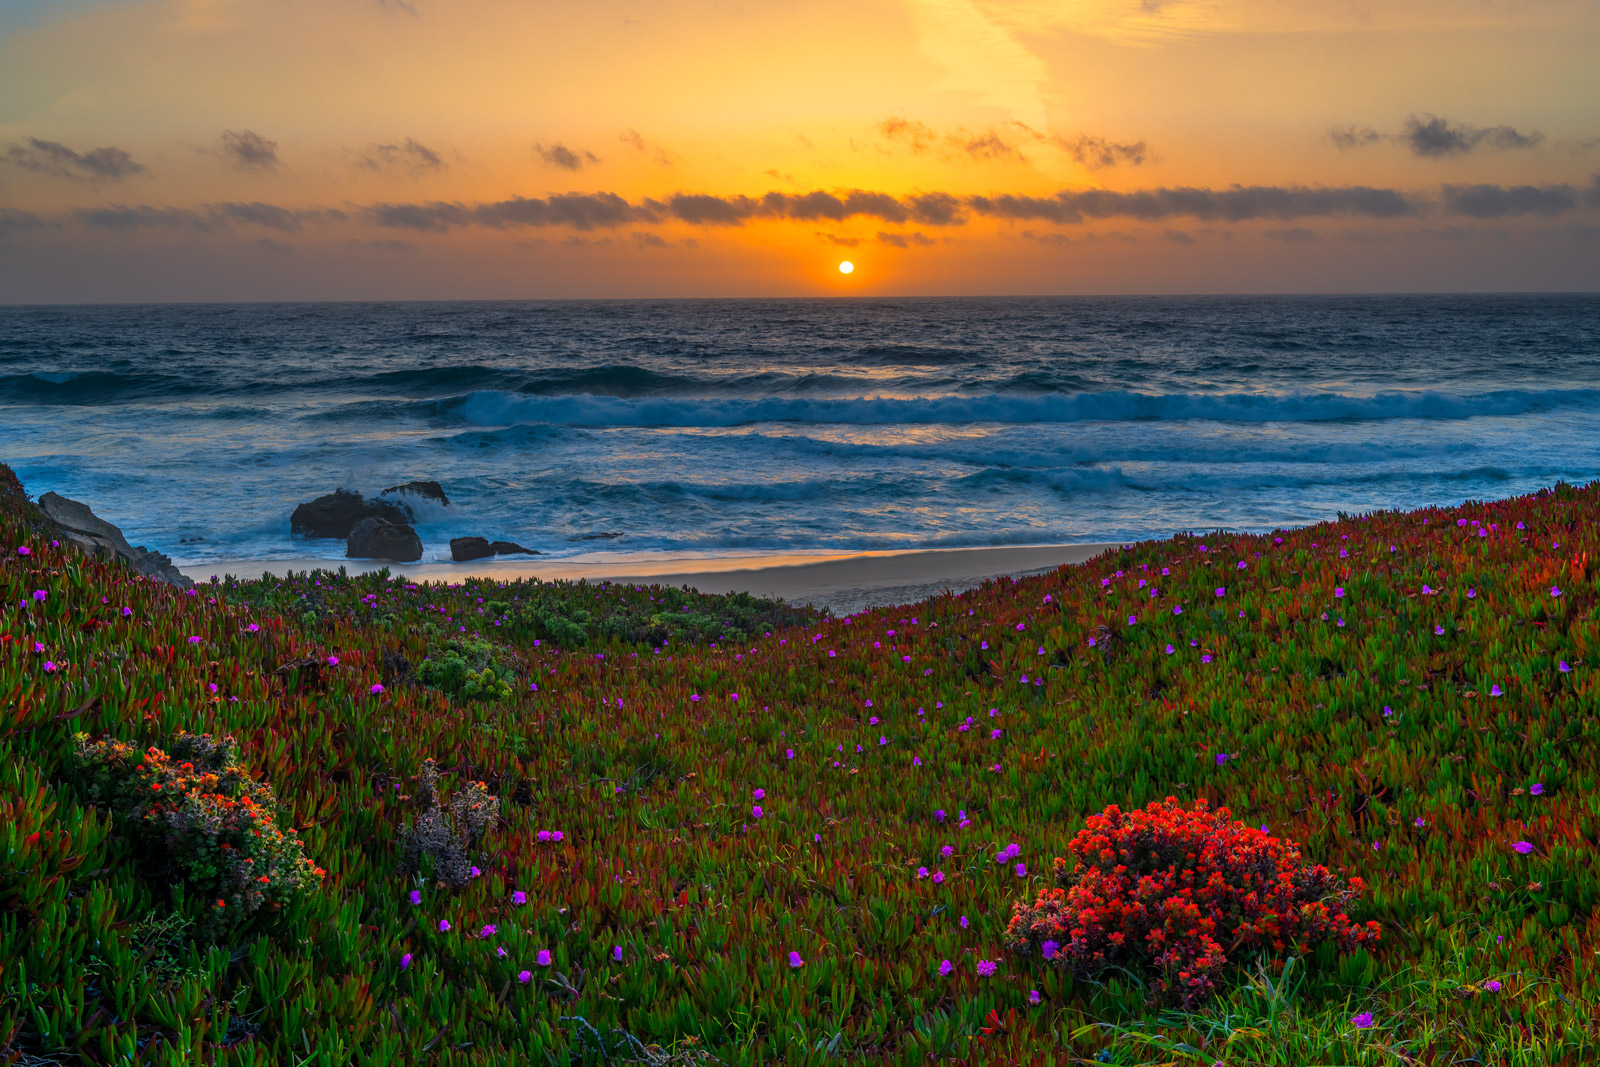 A Limited Edition, Fine Art photograph of sunset at Garapatta Beach on the Big Sur Coast in California. Available as a Fine Art...